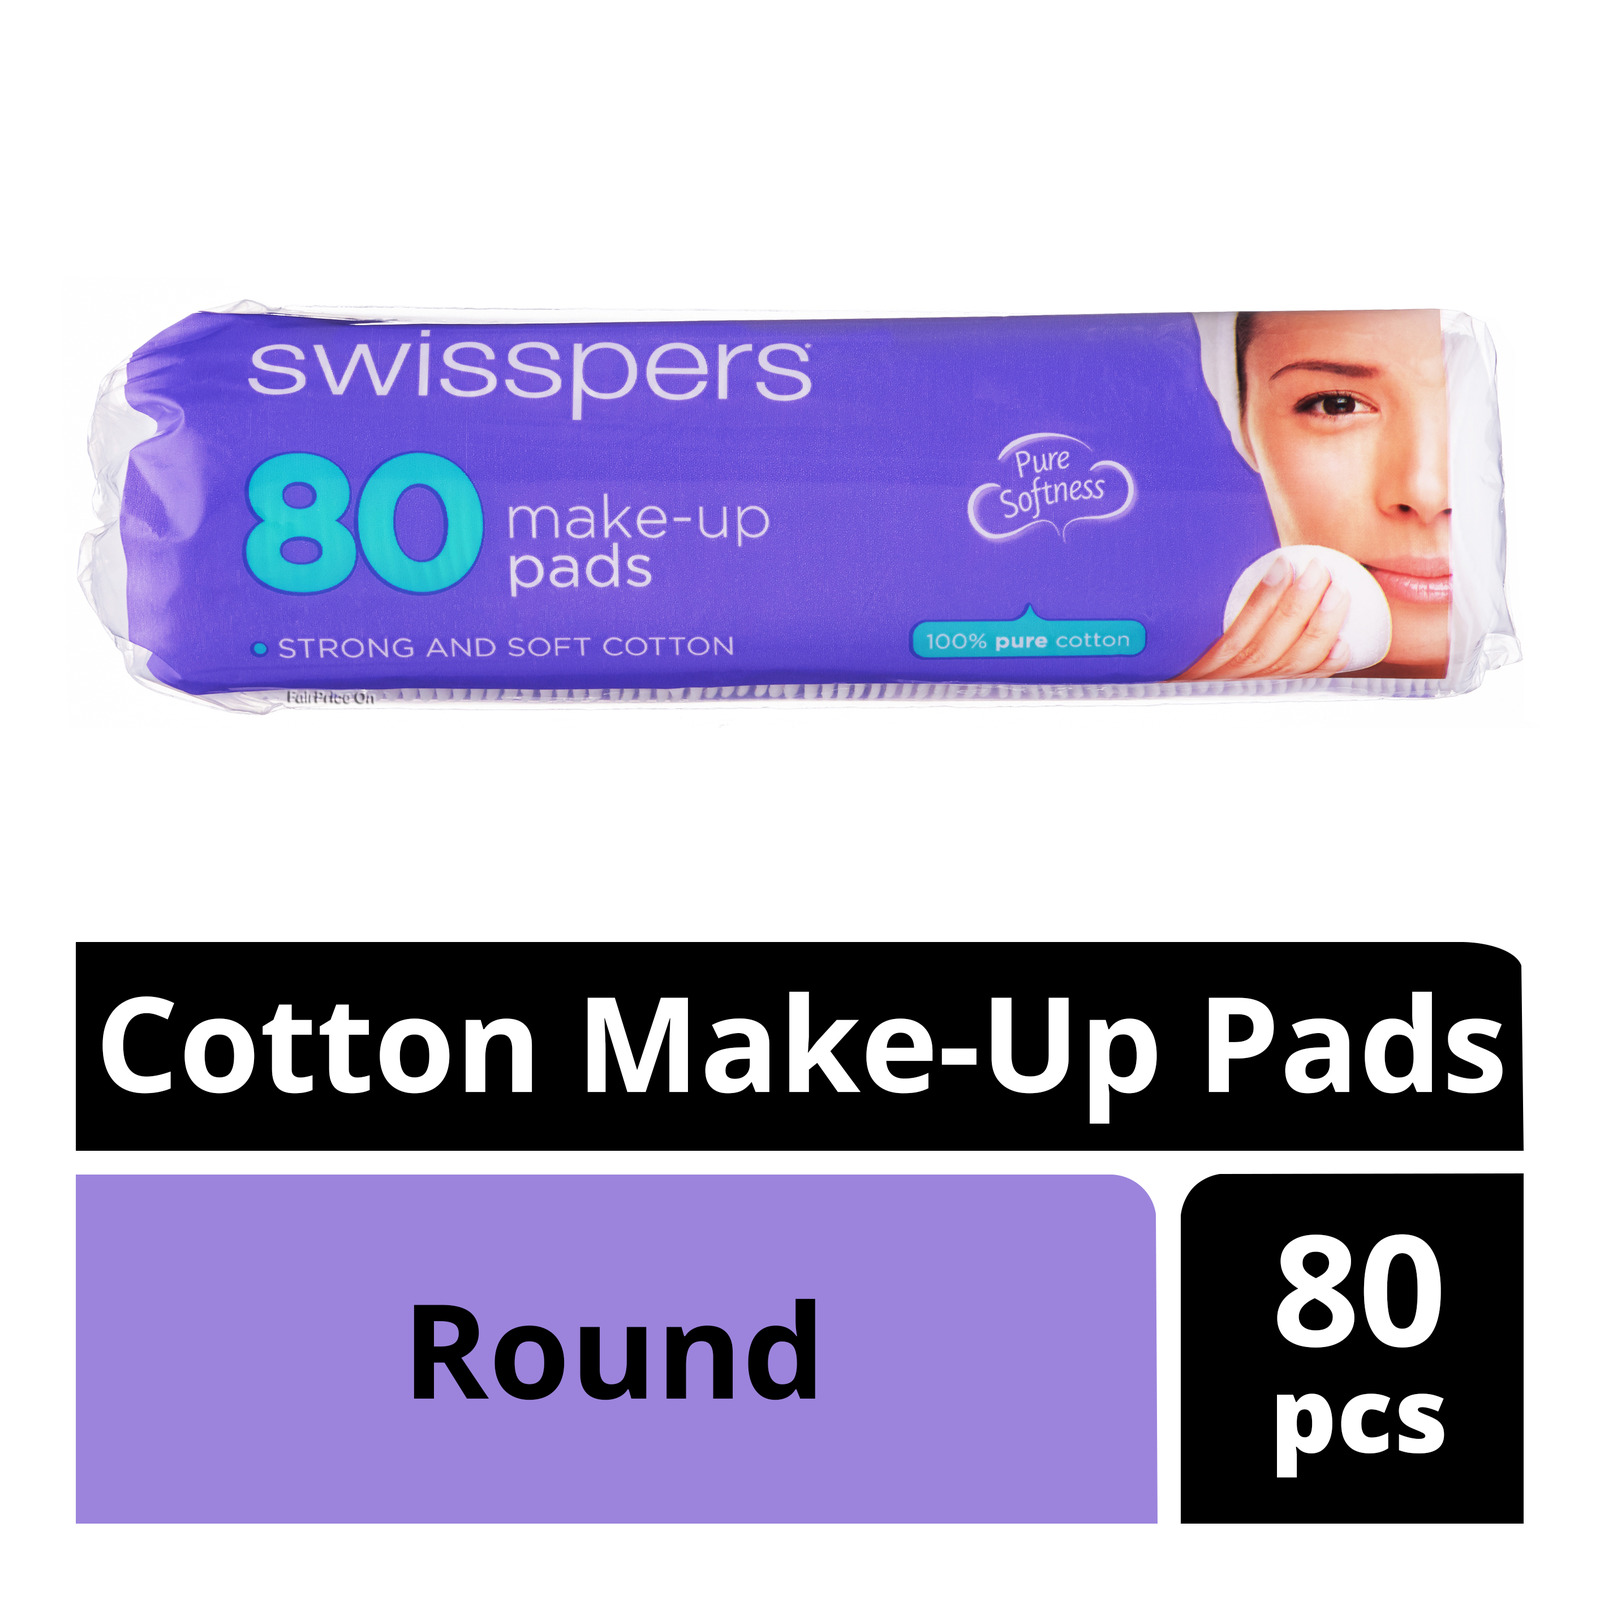 Swisspers Cotton Make-Up Pads - Round